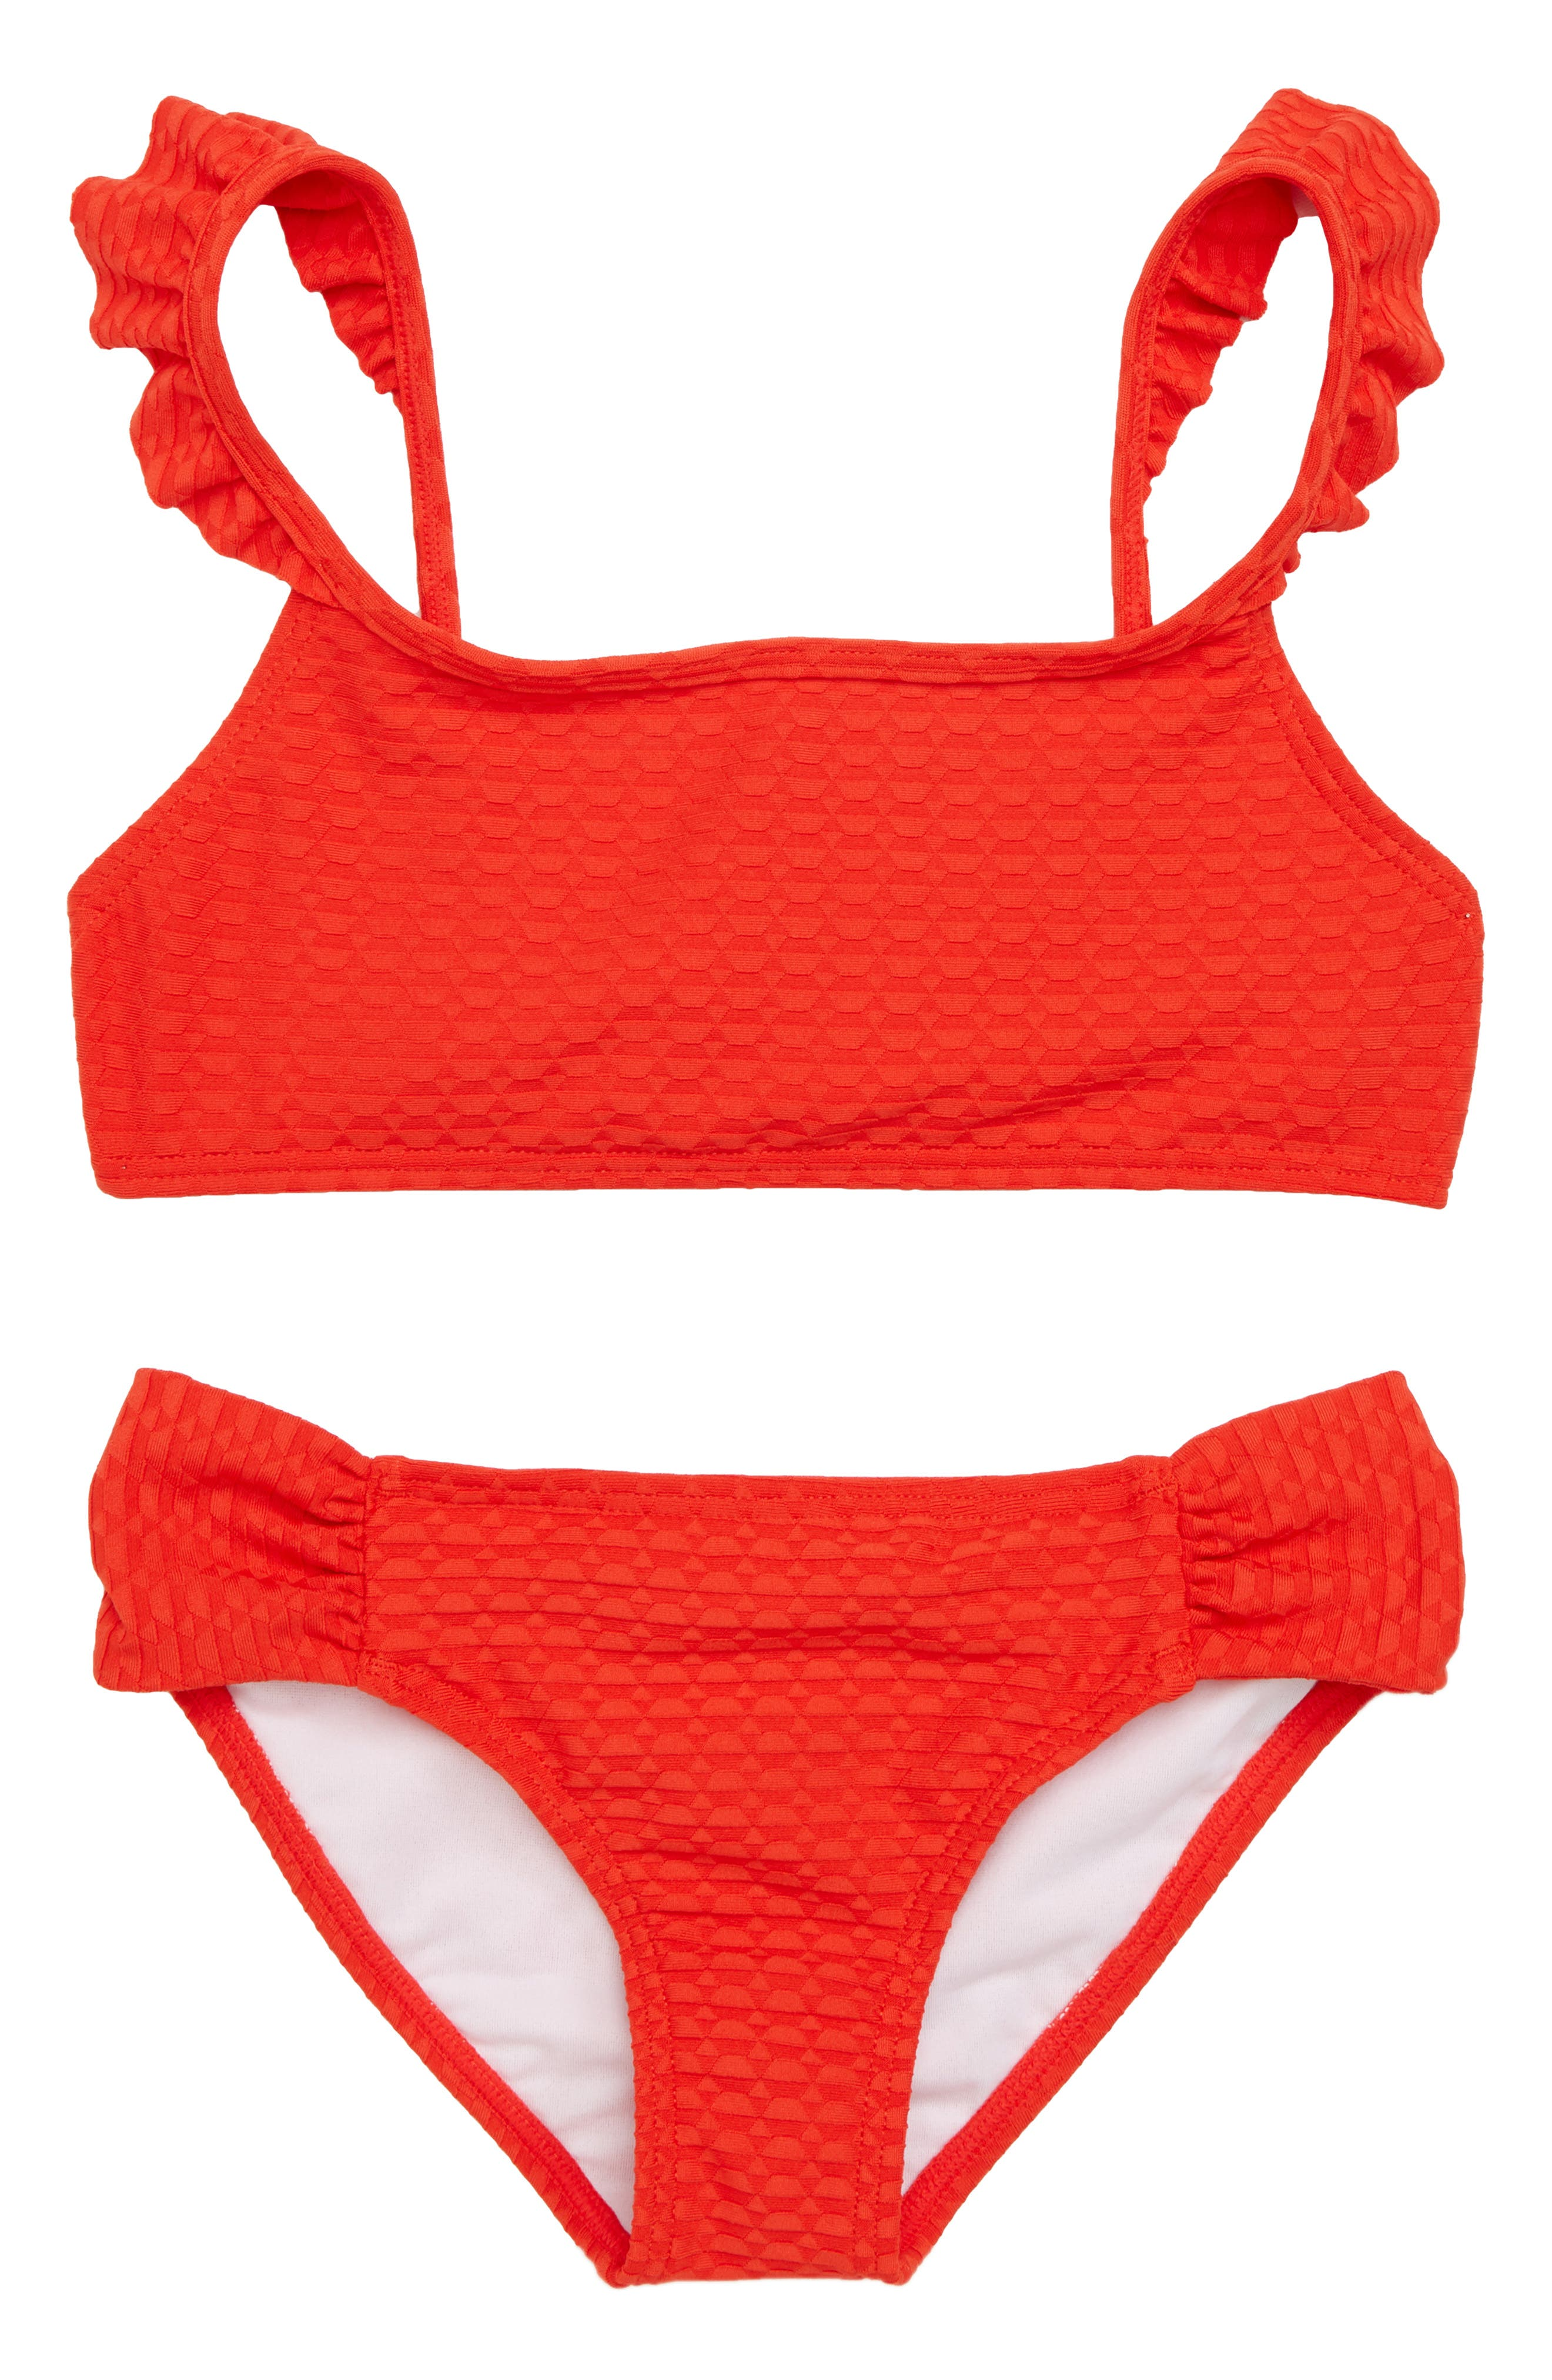 Makin Shapes Two-Piece Swimsuit,                         Main,                         color, 951